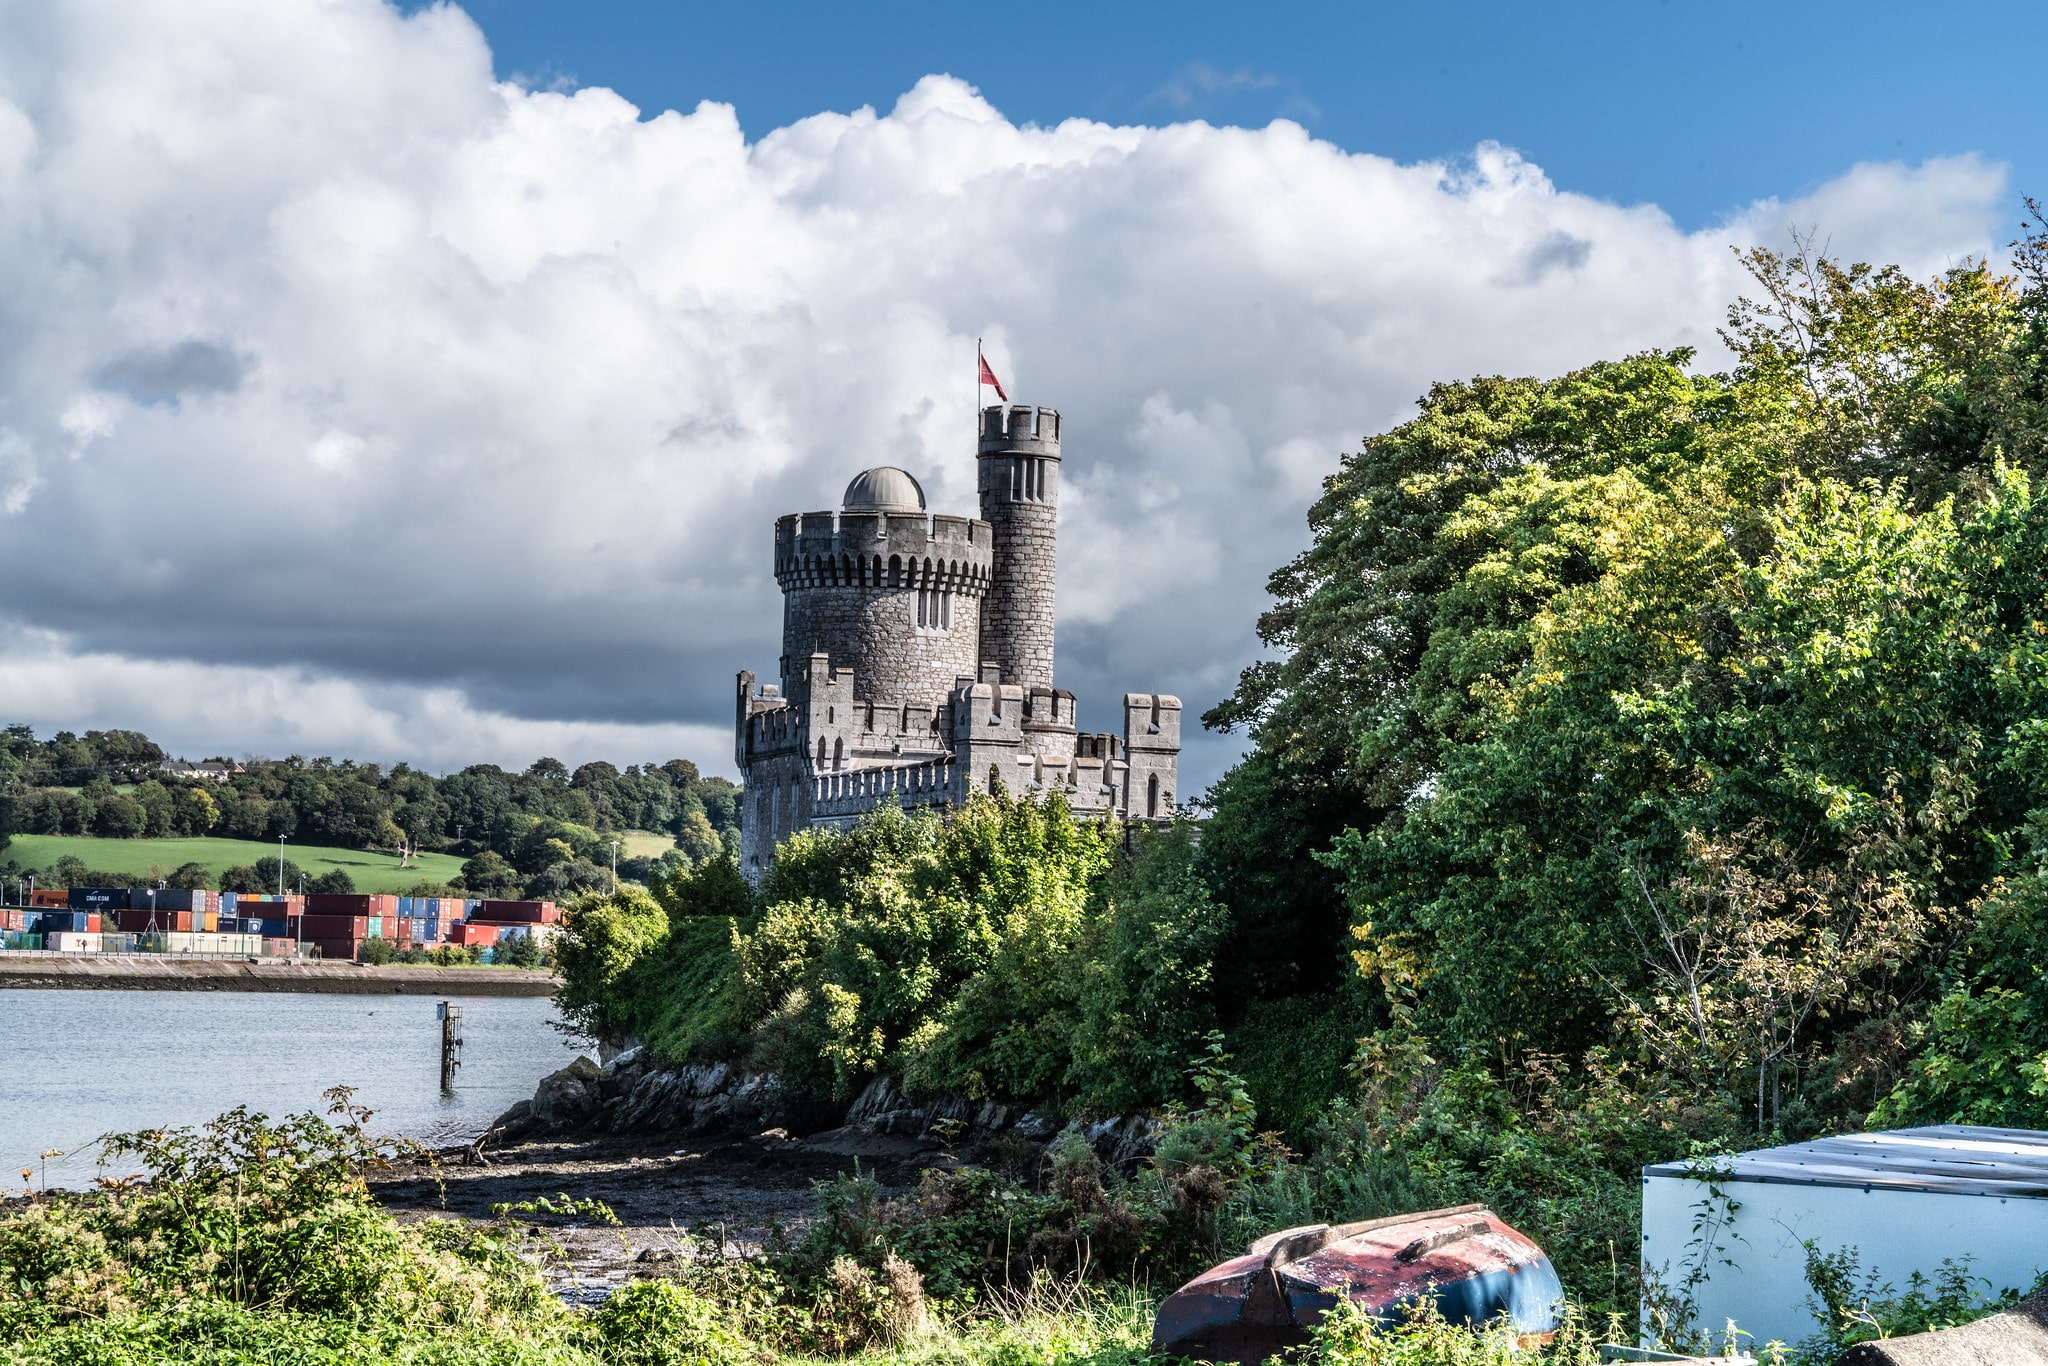 Stargazing at the Blackrock Castle Observatory is a cool thing to do in Cork Ireland